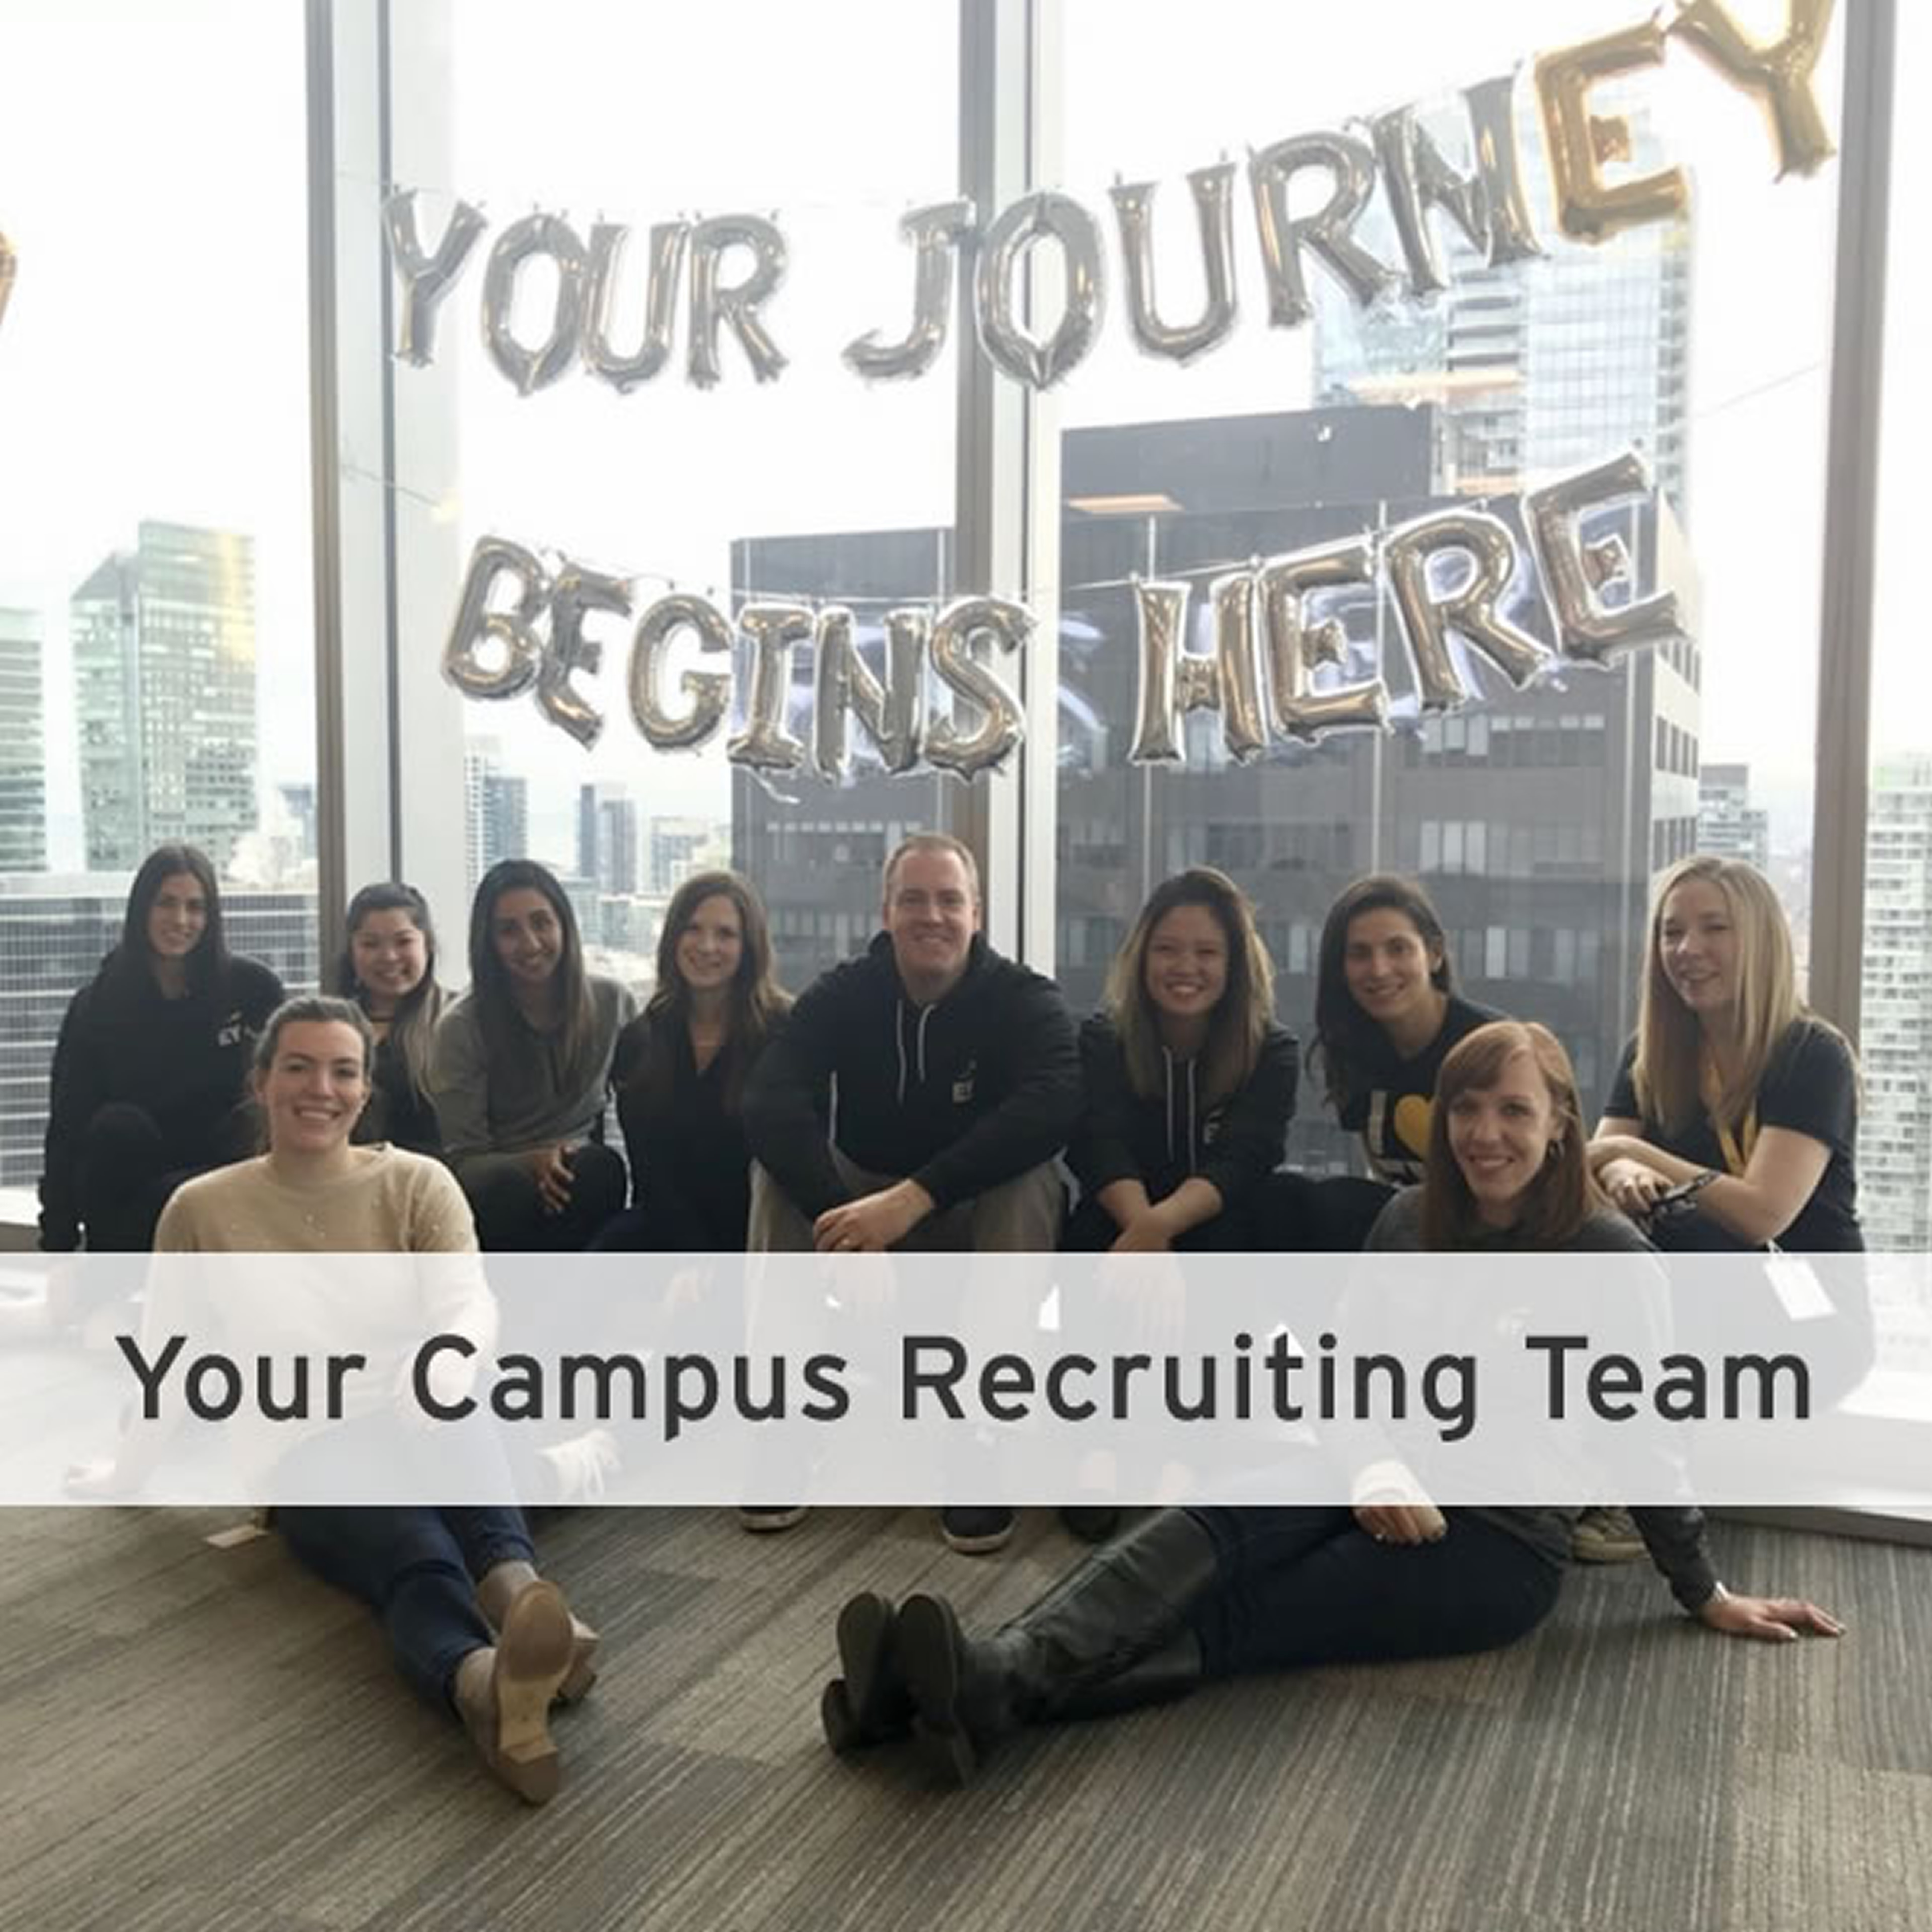 Your Campus Recruiting Team